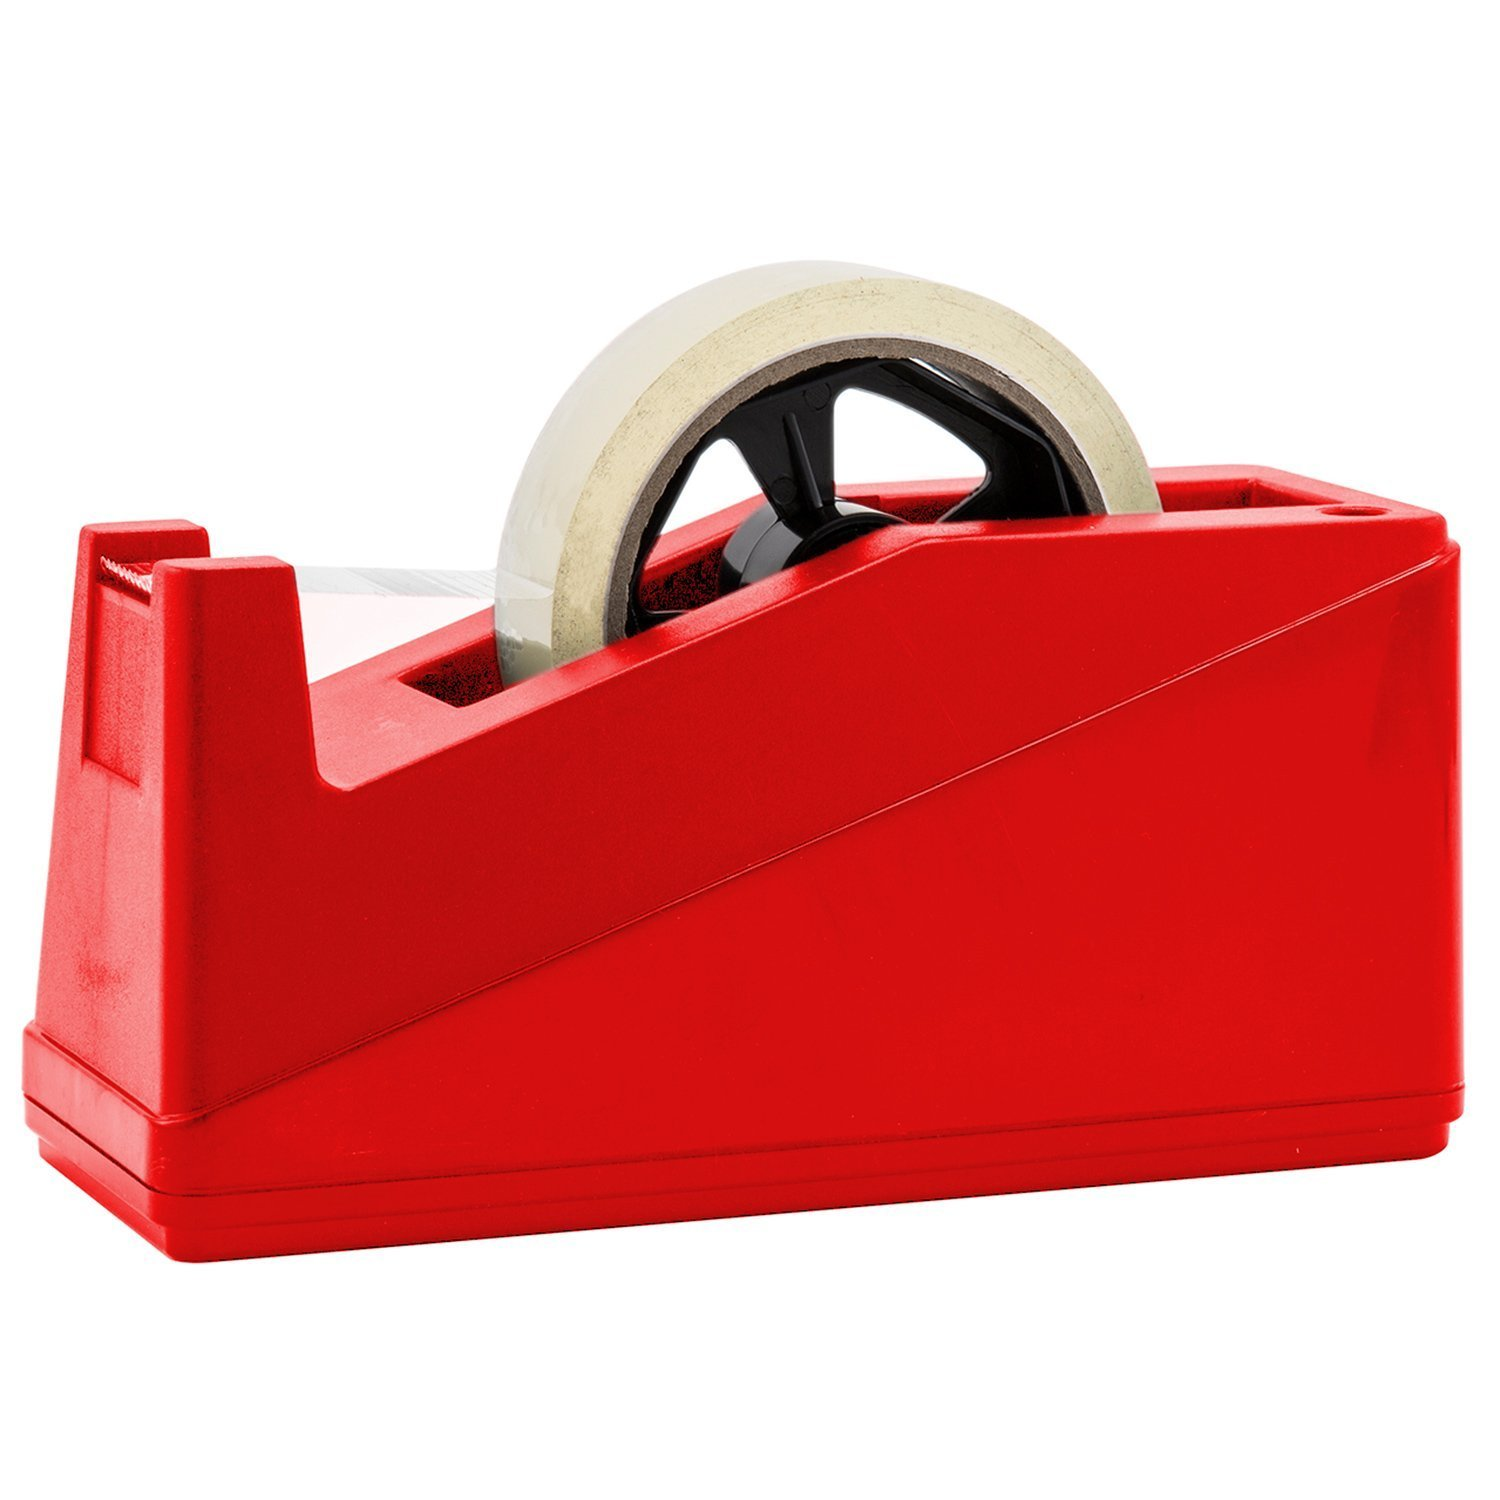 "Desktop Tape Dispenser Adhesive Roll Holder (Fits 1"" & 3"" Core) Heavy Duty Premium by Royal Imports with Weighted Nonskid Base, Red"